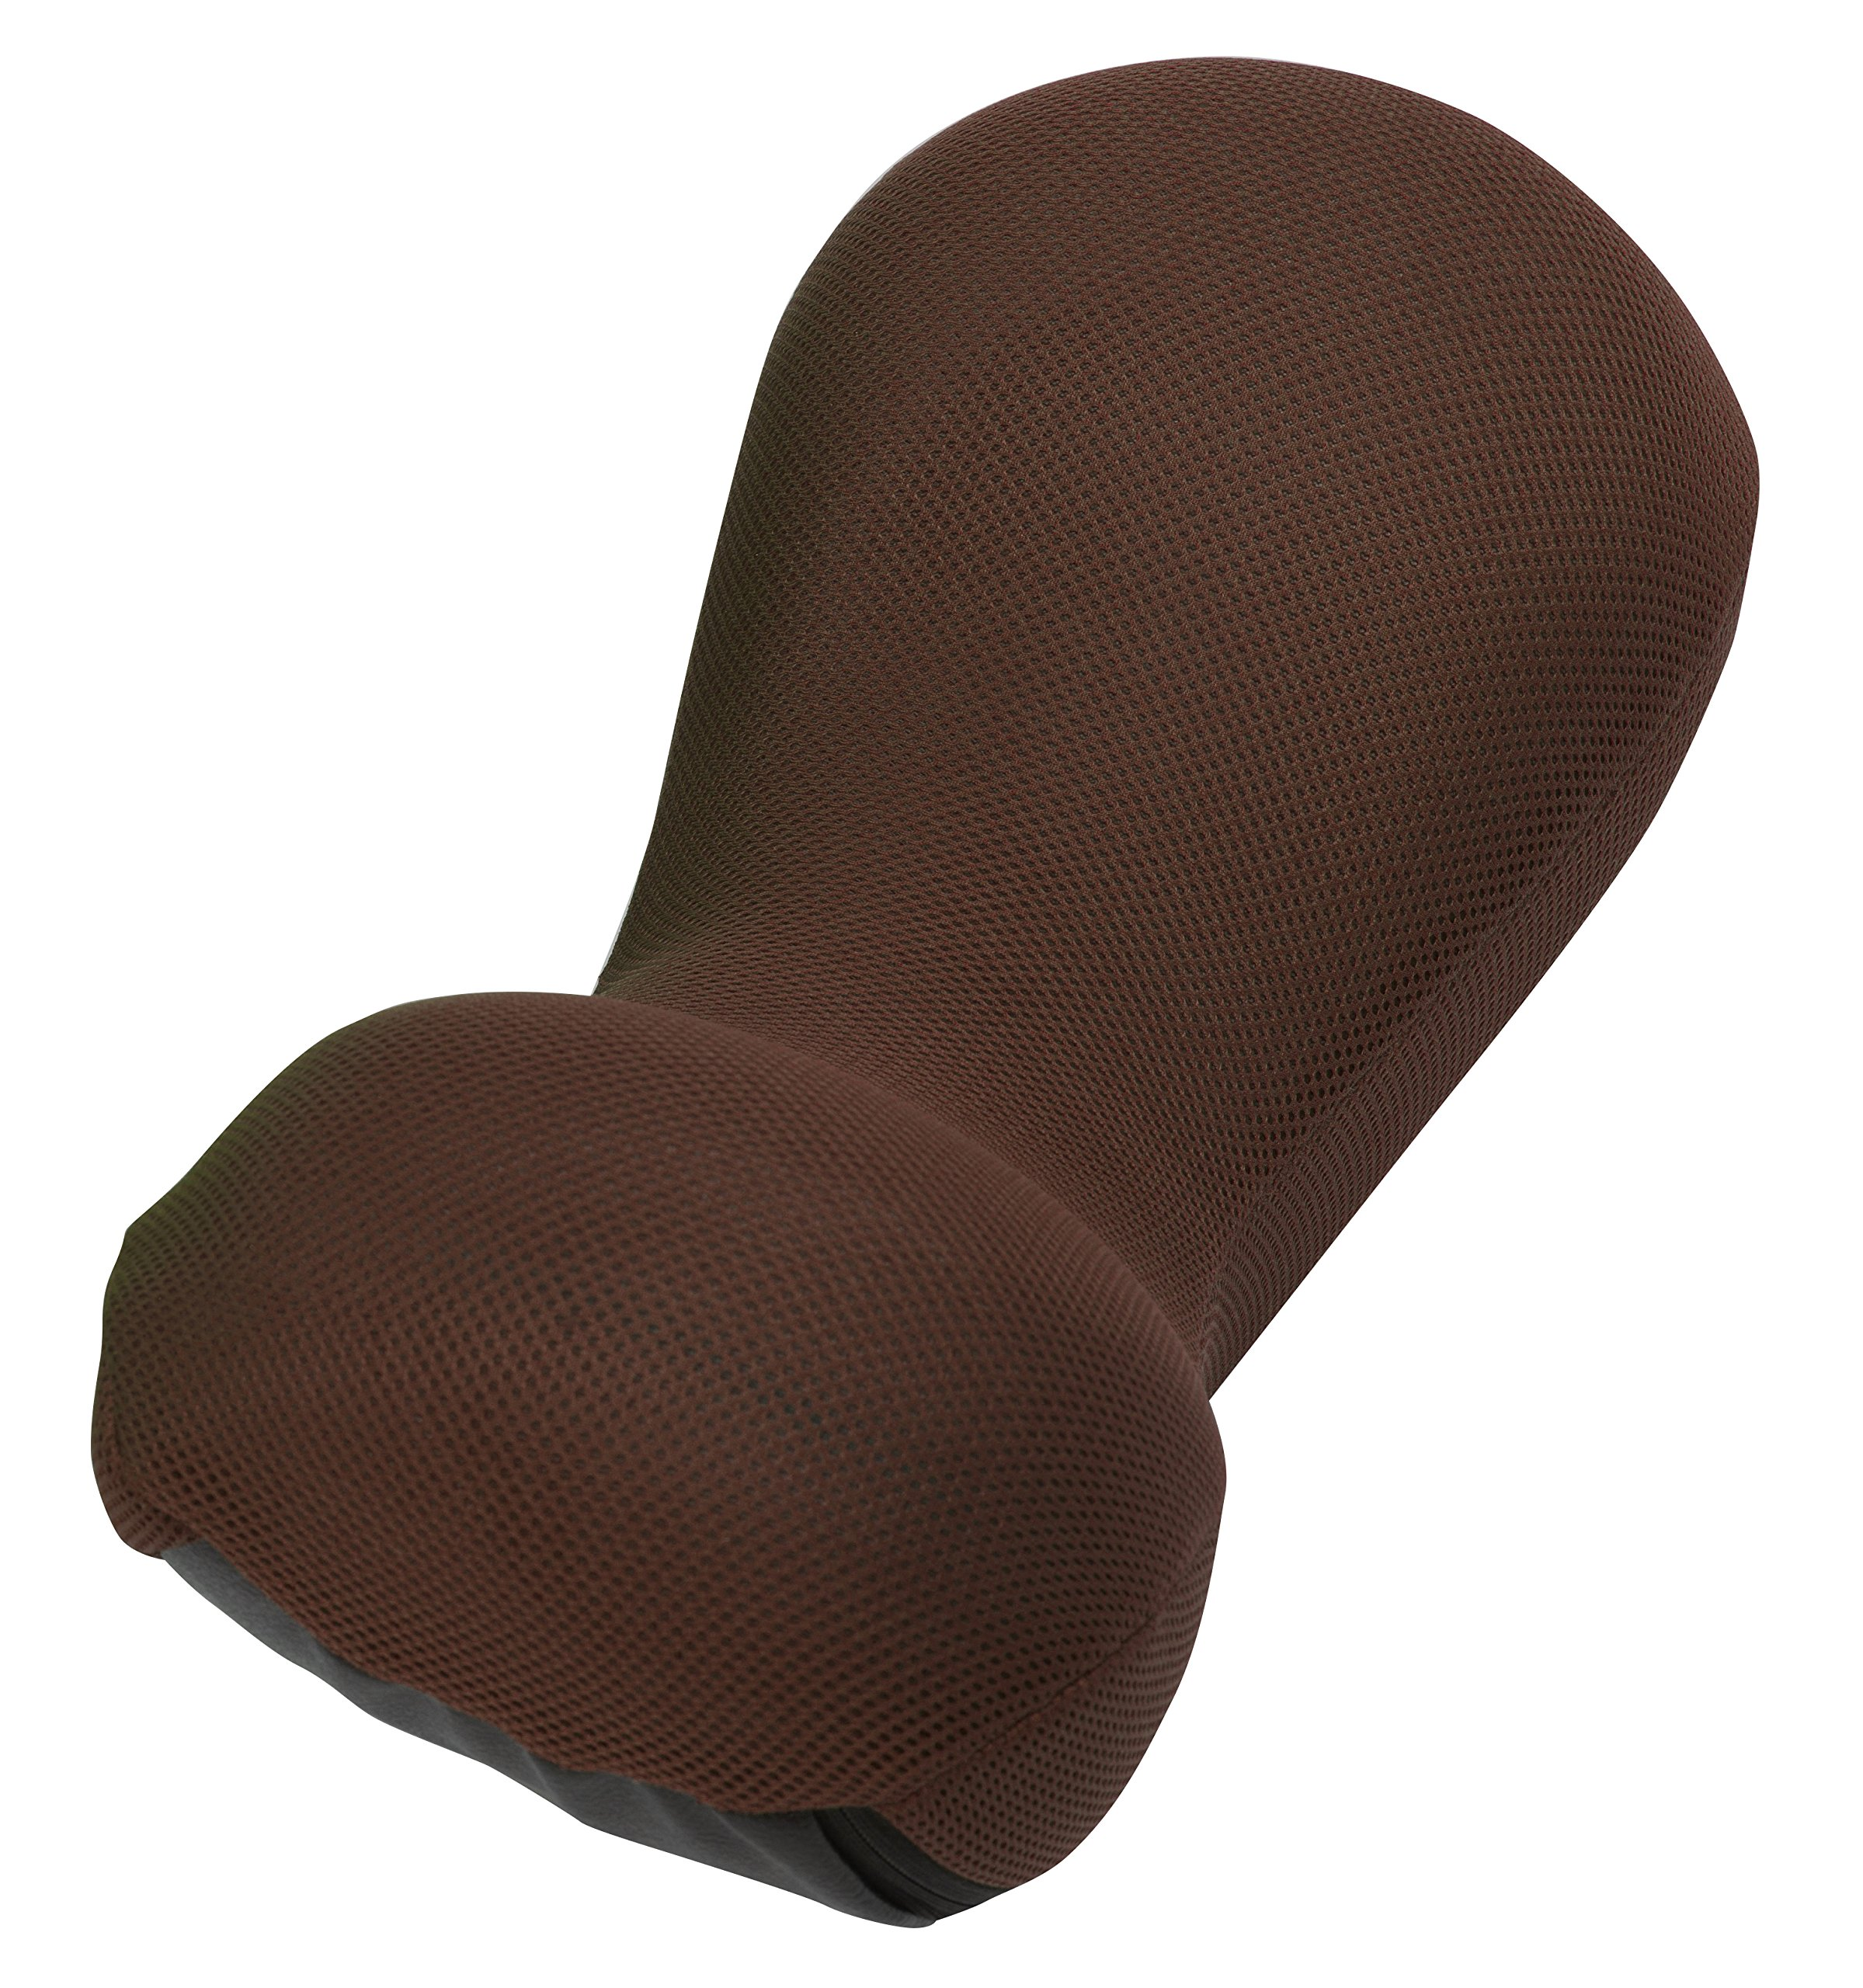 TOKYU SPORTS OASIS '' Nagara Cushion fit '' (While Cushion fit) NC-500-BR (Brown)【Japan Domestic genuine products】